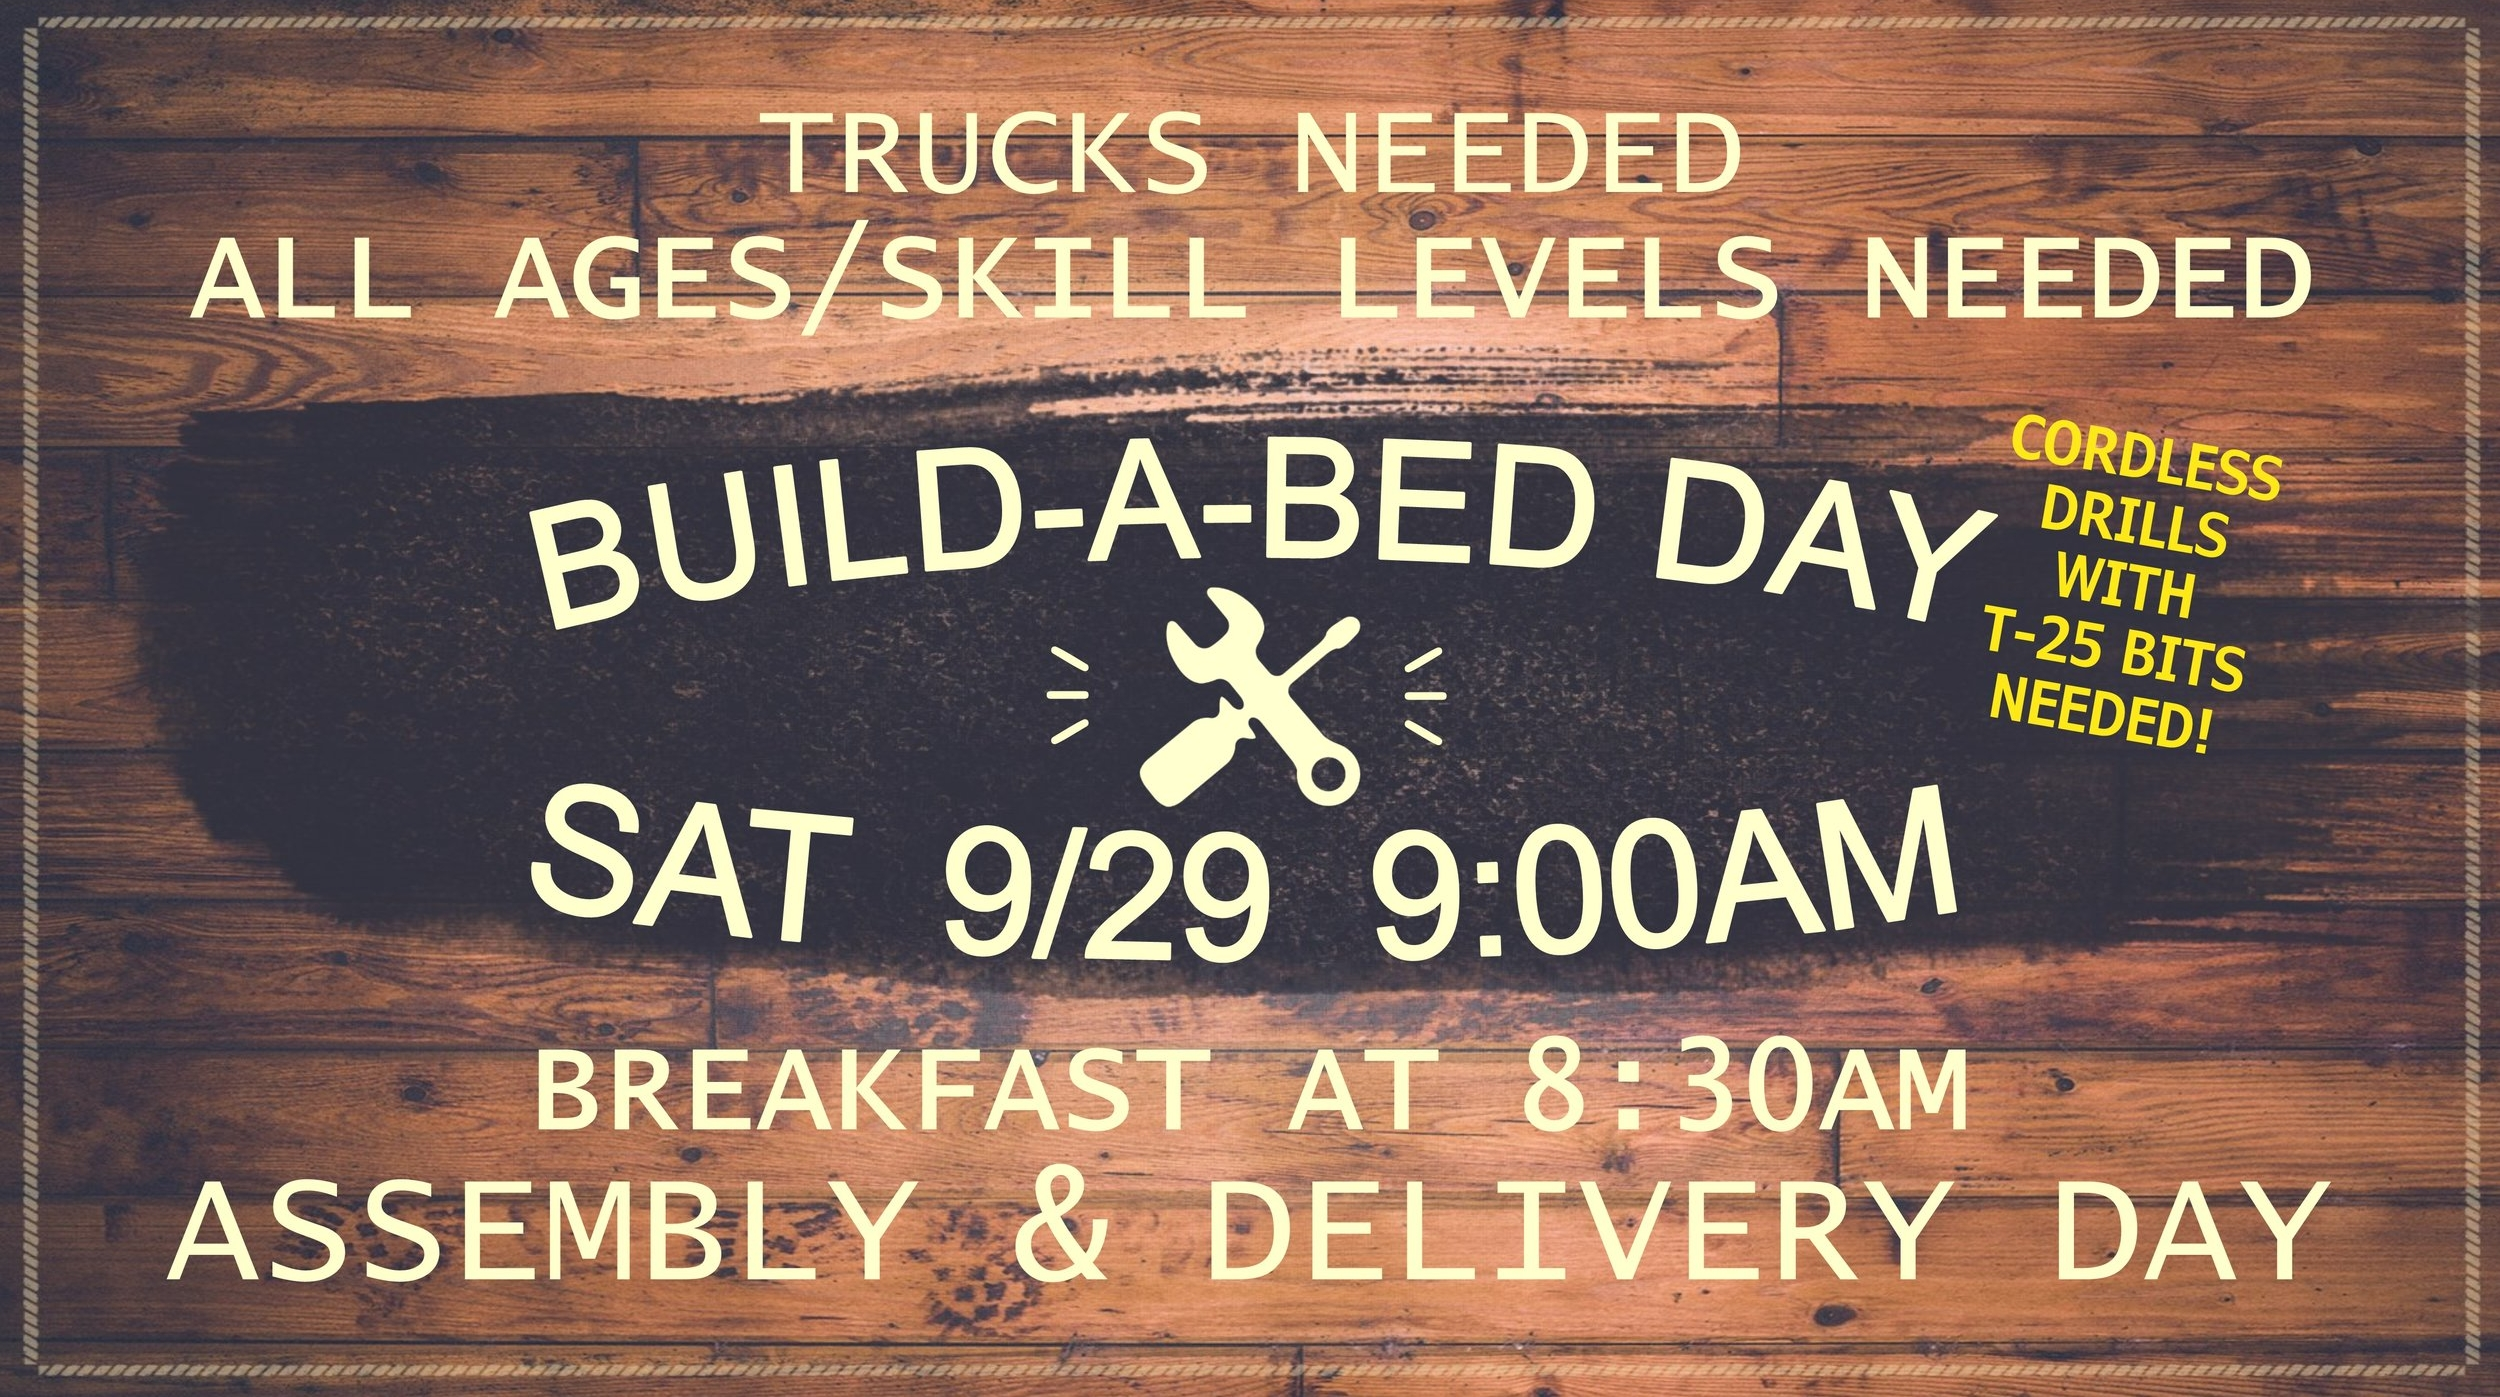 Build A Bed Facebook Link 092518.jpg